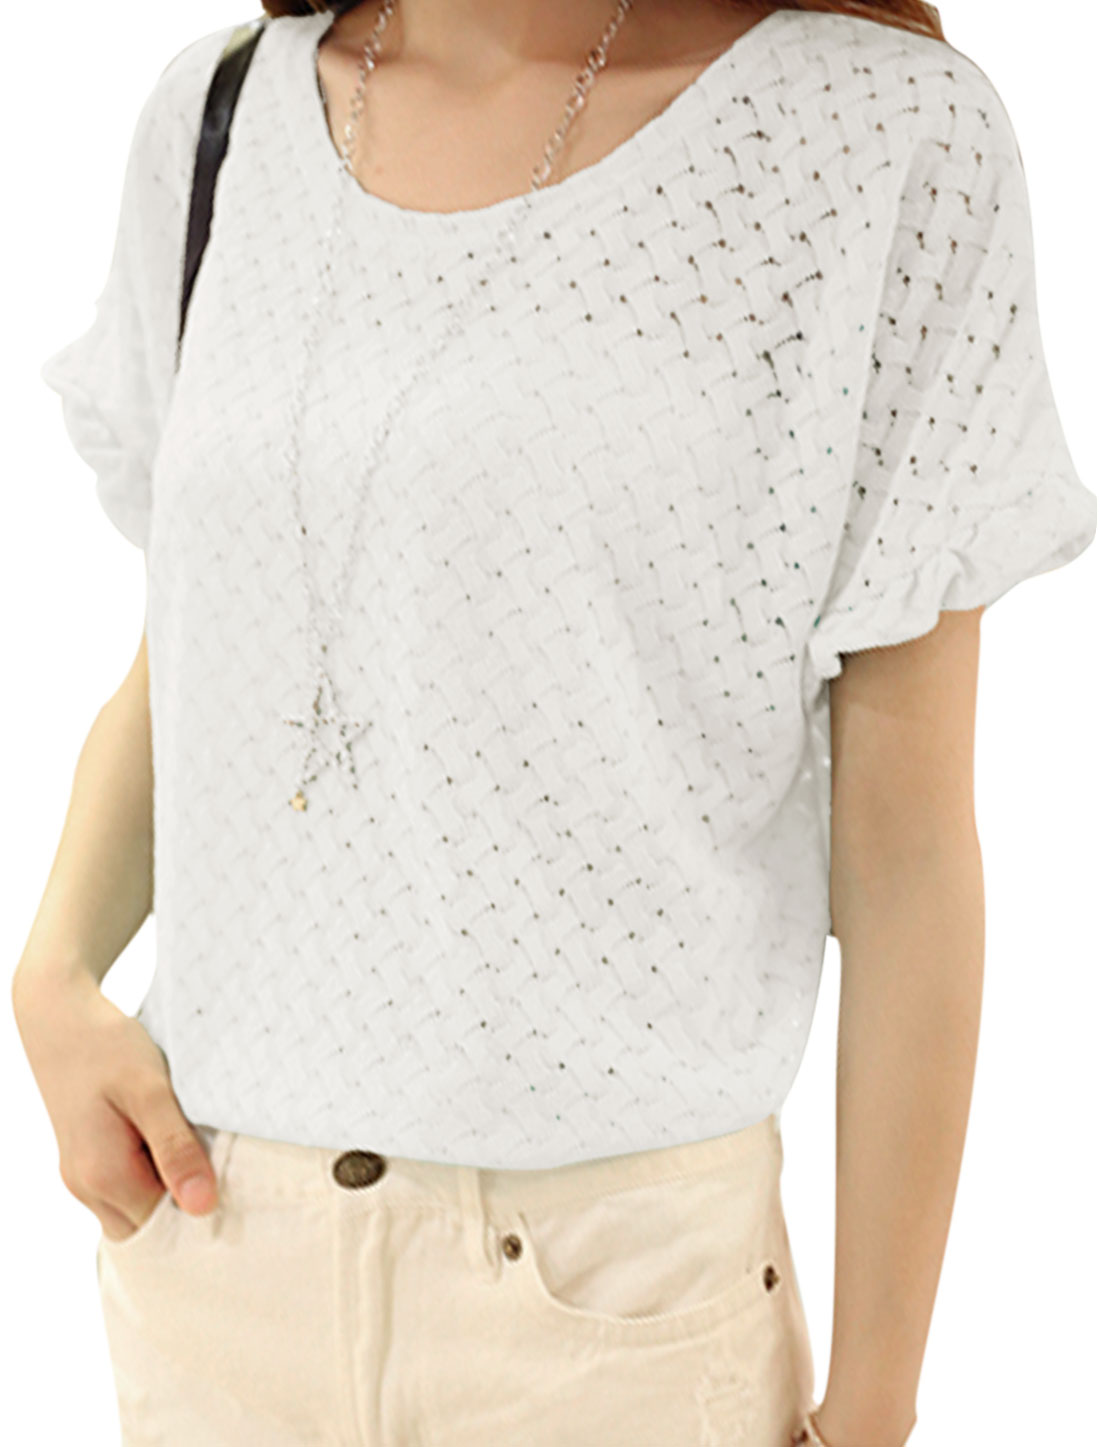 Lady Short Batwing Sleeve Hollow Out Lace Cover Up Top White XS